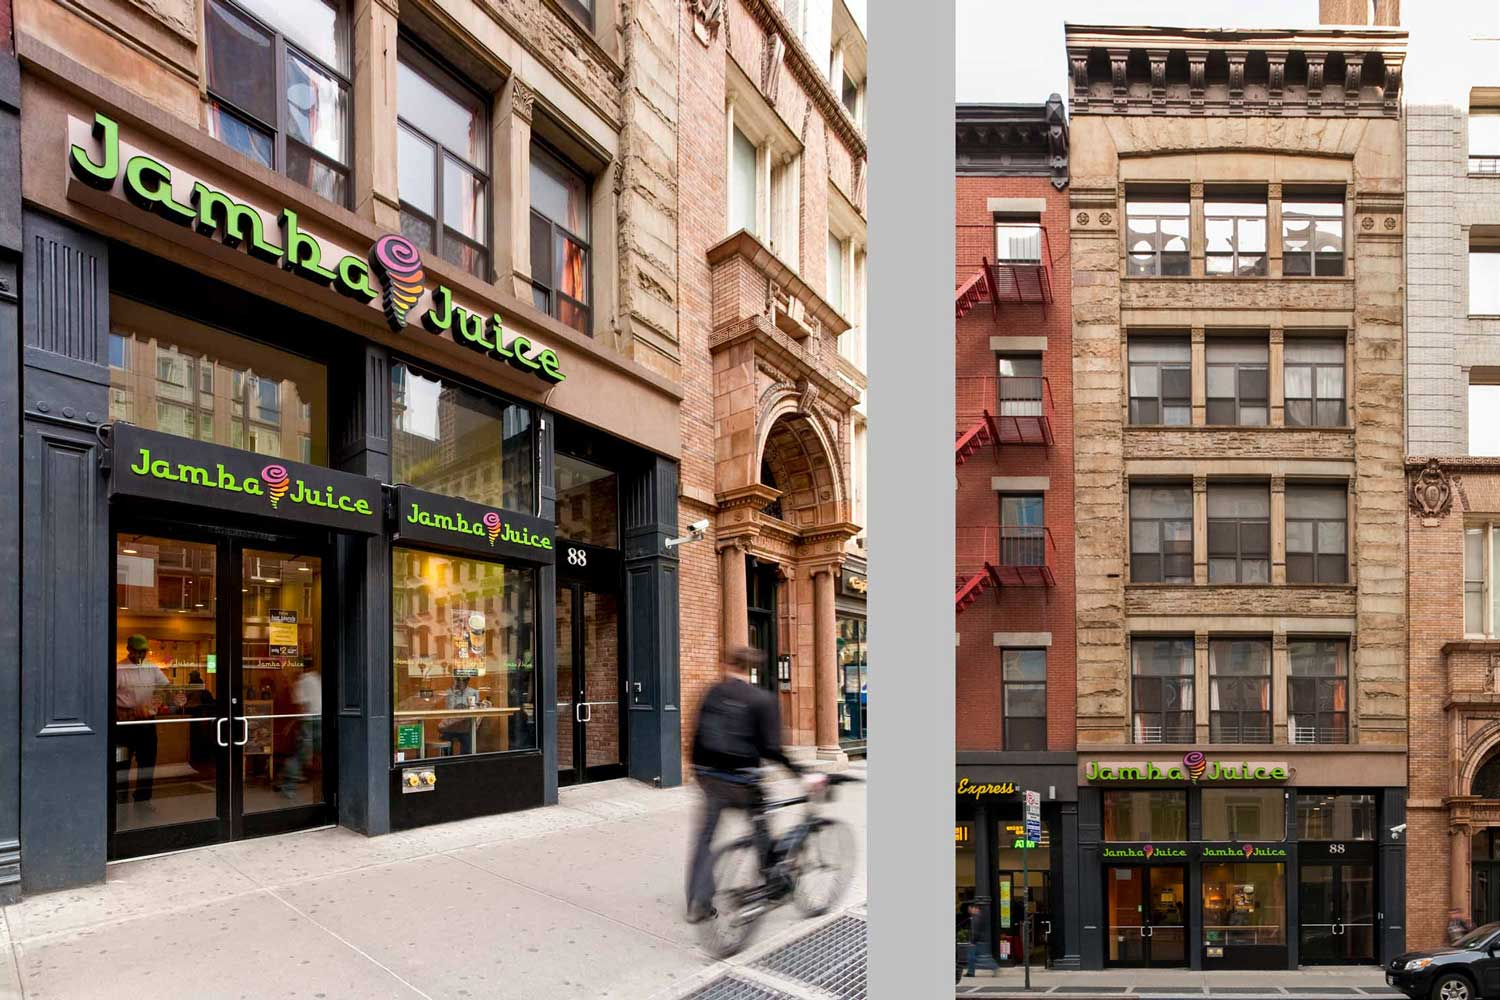 Commercial renovation locating a Jamba Juice on the ground floor of a historic Tribeca structure